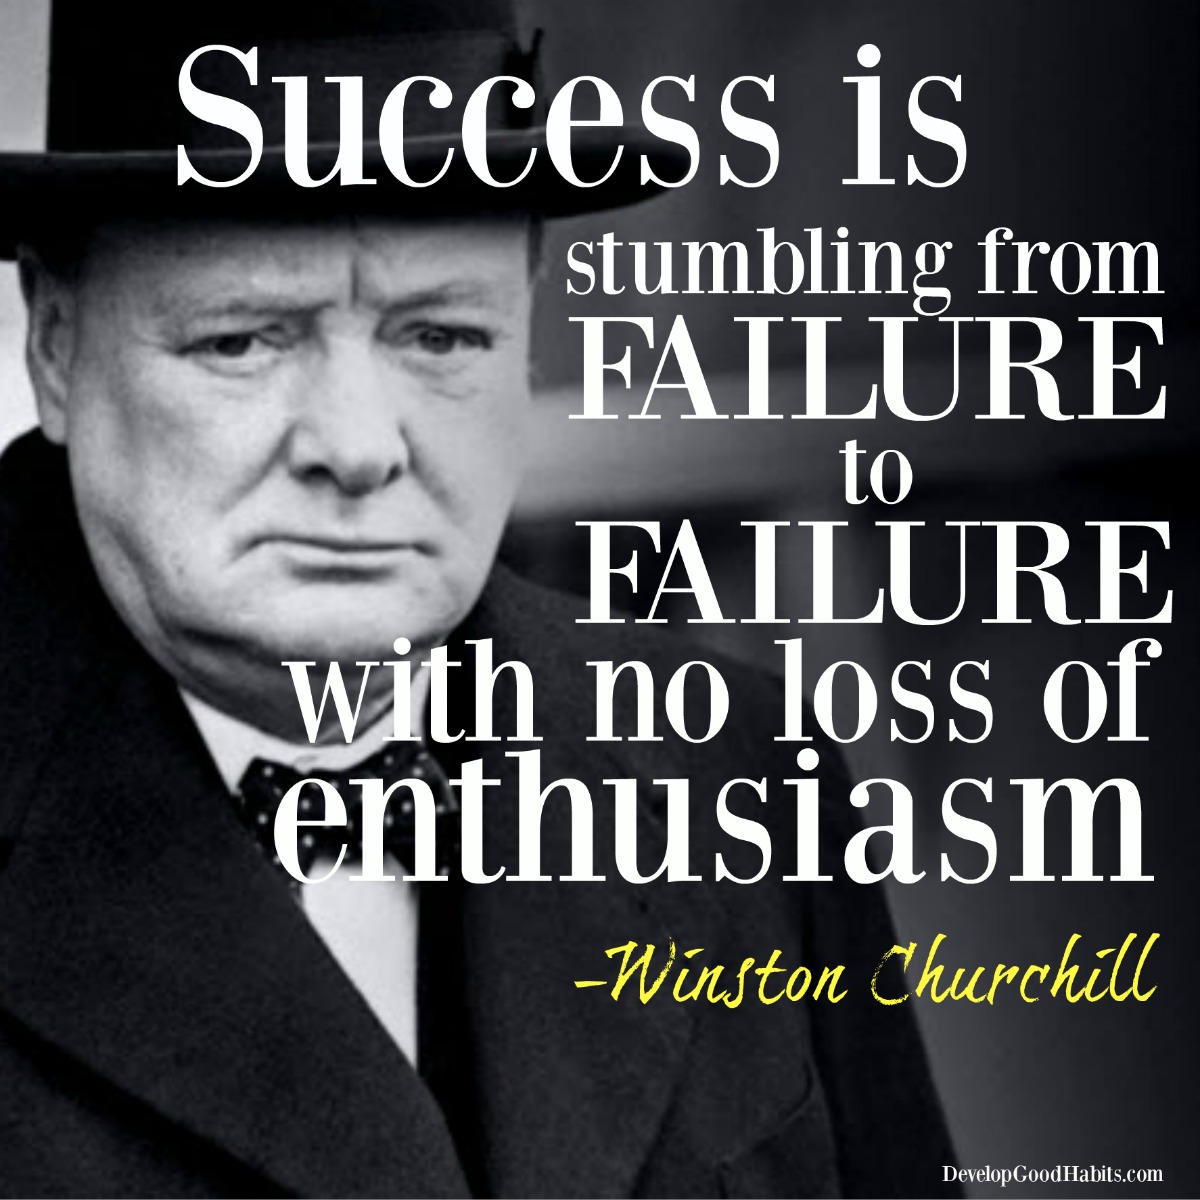 Inspirational Quotes About Failure: Churchill-success-quotes